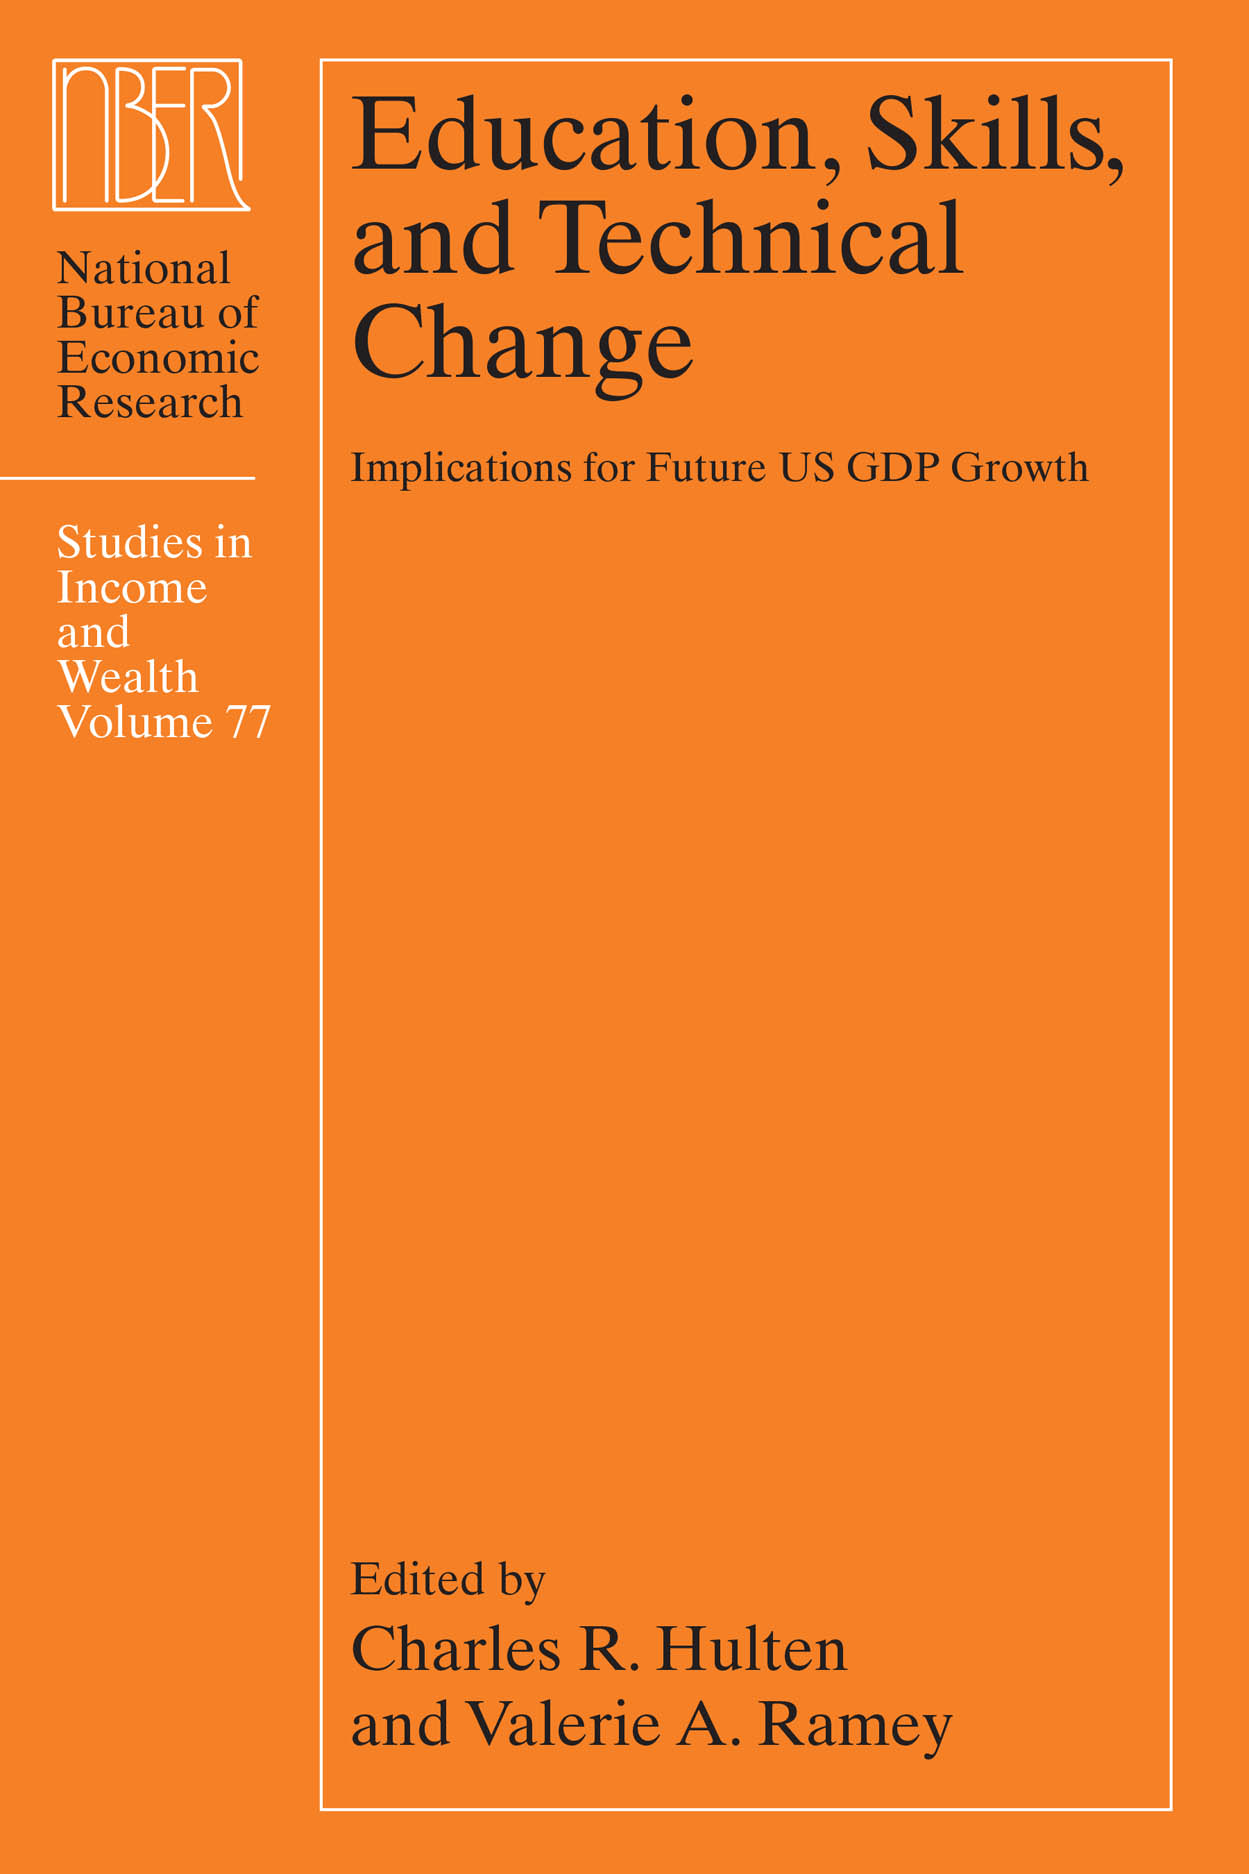 Education, Skills, and Technical Change: Implications for Future US GDP Growth